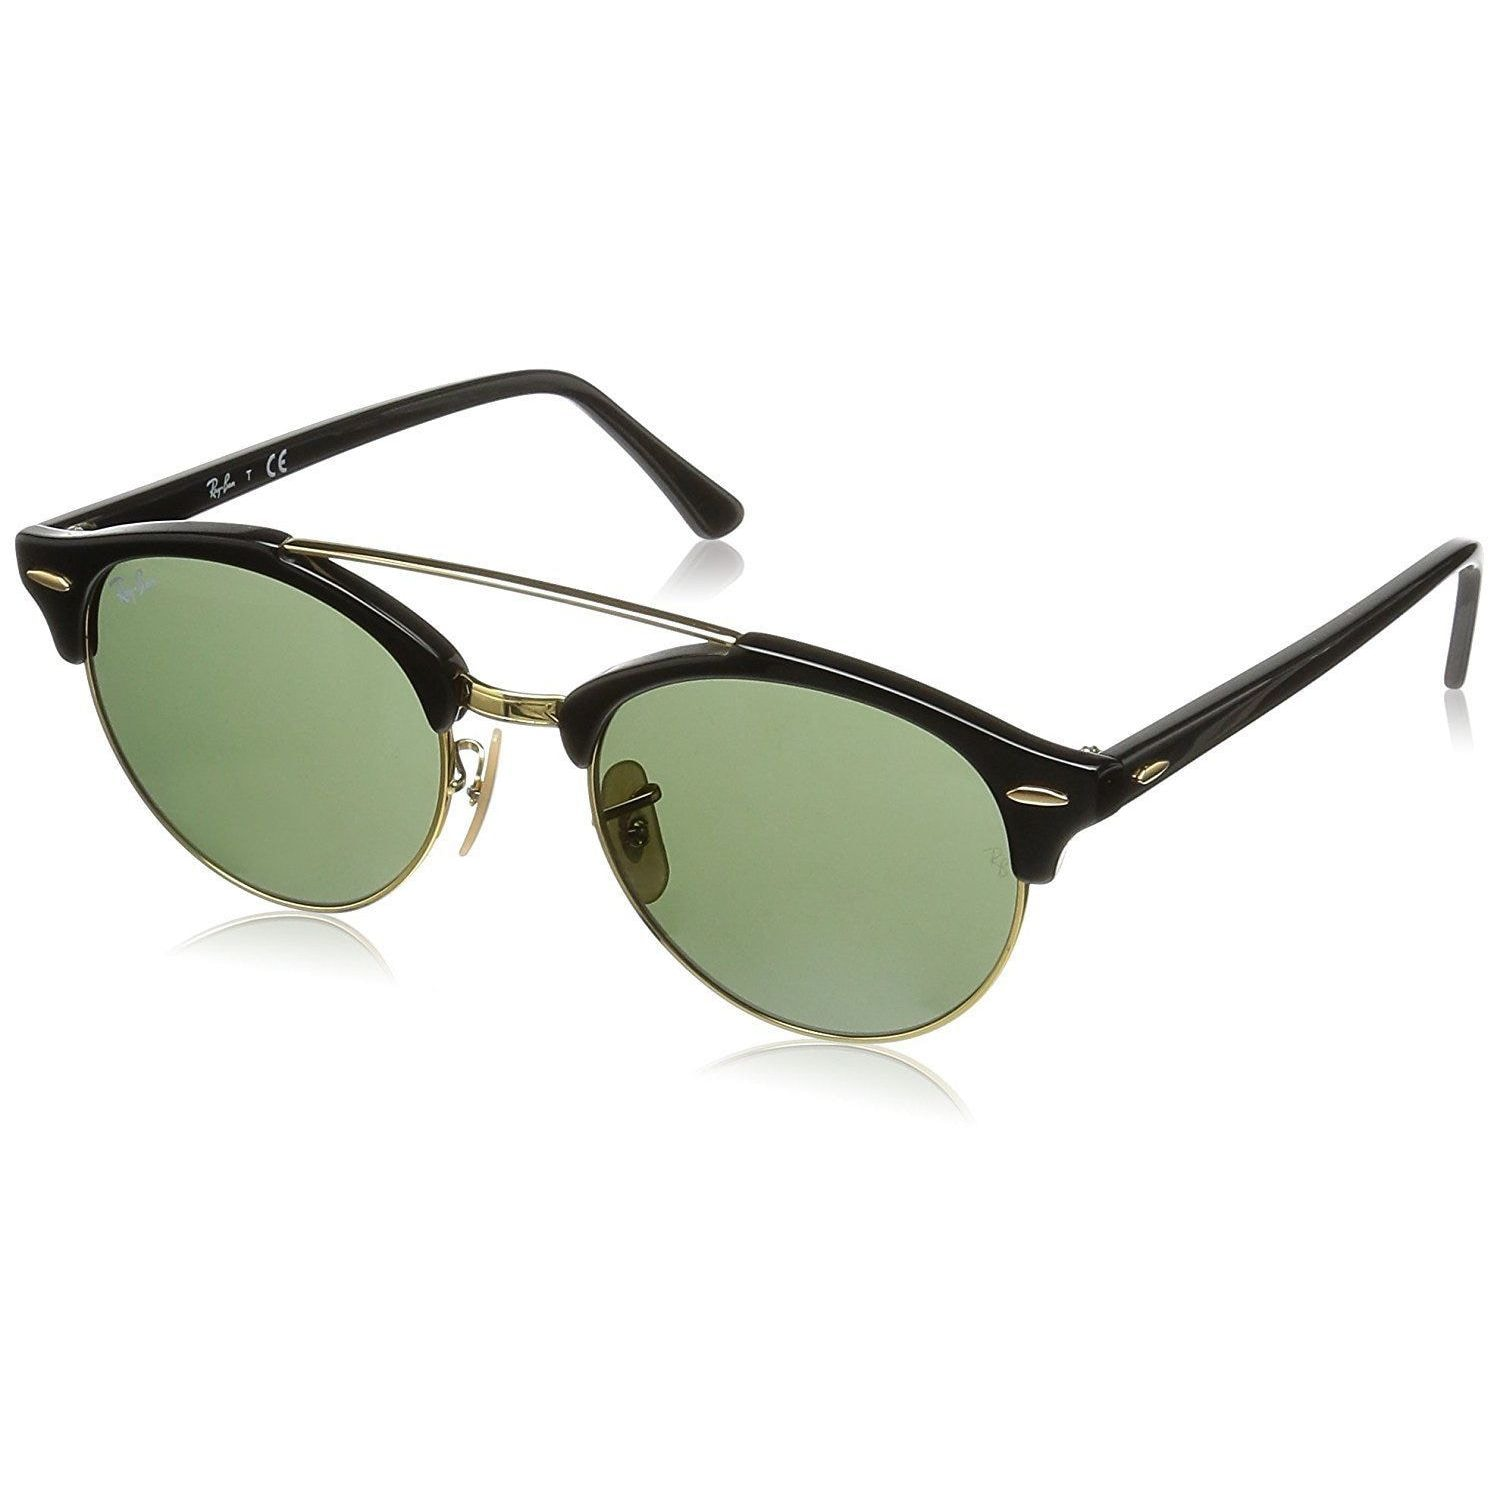 3d5b26c38b5 Shop Ray-Ban Clubround Double Bridge RB4346 901 Men s Black Frame Green  Classic Lens Sunglasses - Free Shipping Today - Overstock - 15287226